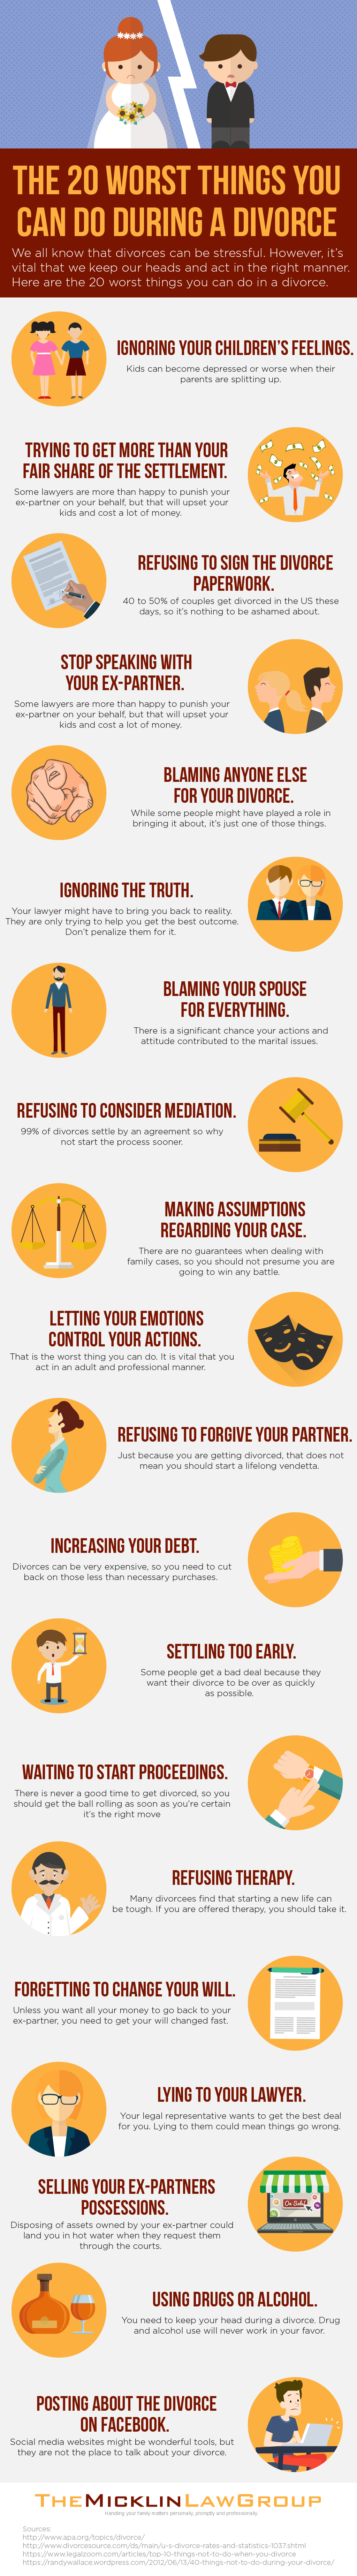 infographic of 20 worst things you can do during a divorce